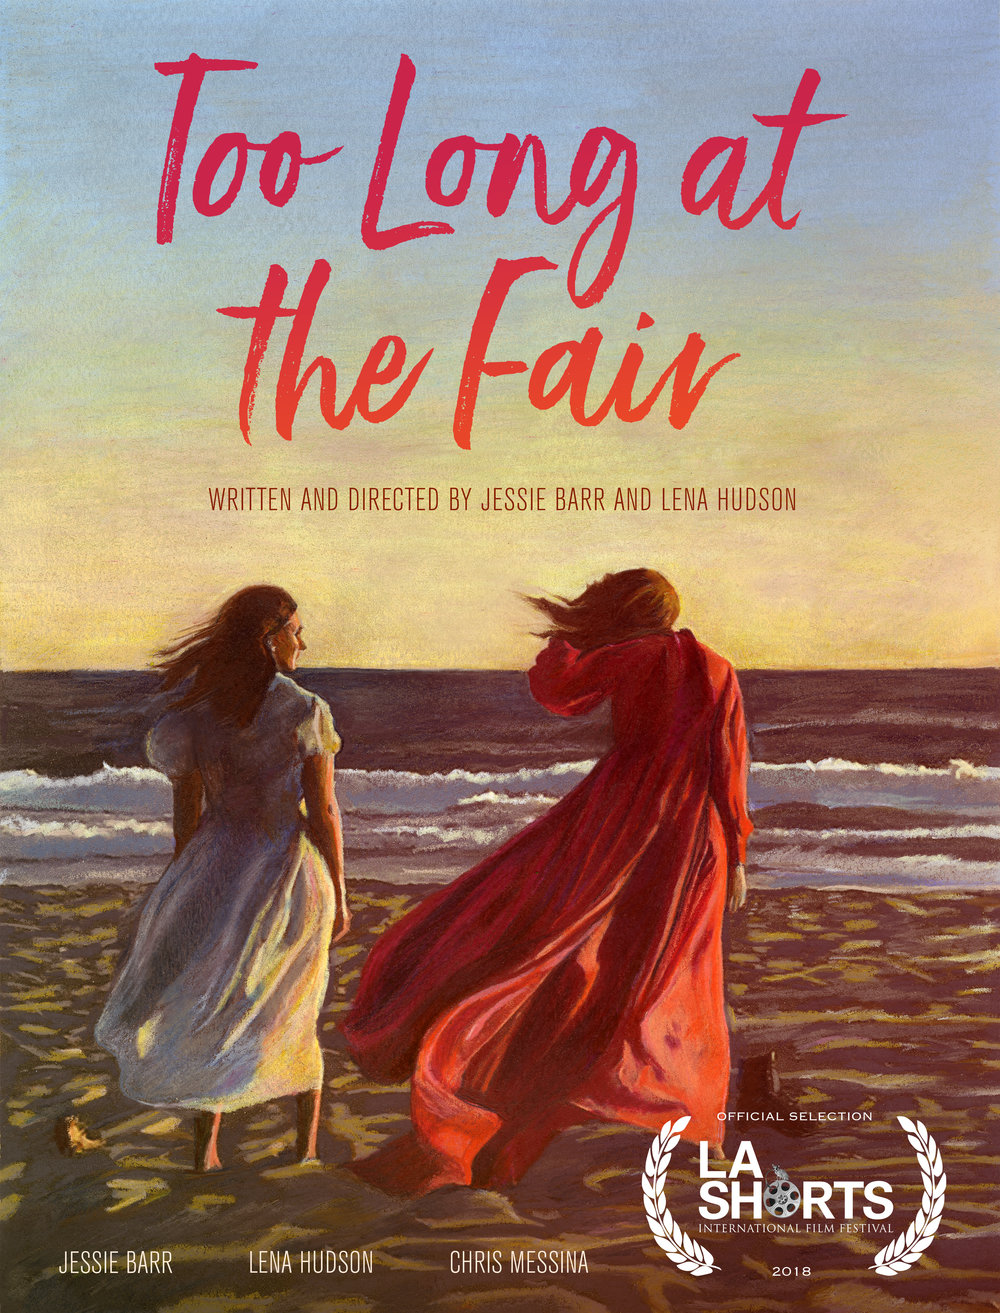 Too Long at the Fair WORLD PREMIERE  - TLATF WILL WORLD PREMIERE AT THE 2018 LA INTERNATIONAL SHORT FILM FESTIVALSCREENING on 7/26 AT LAEMMLE NOHO 7 at 1pmFOR TICKETS  CLICK HERE